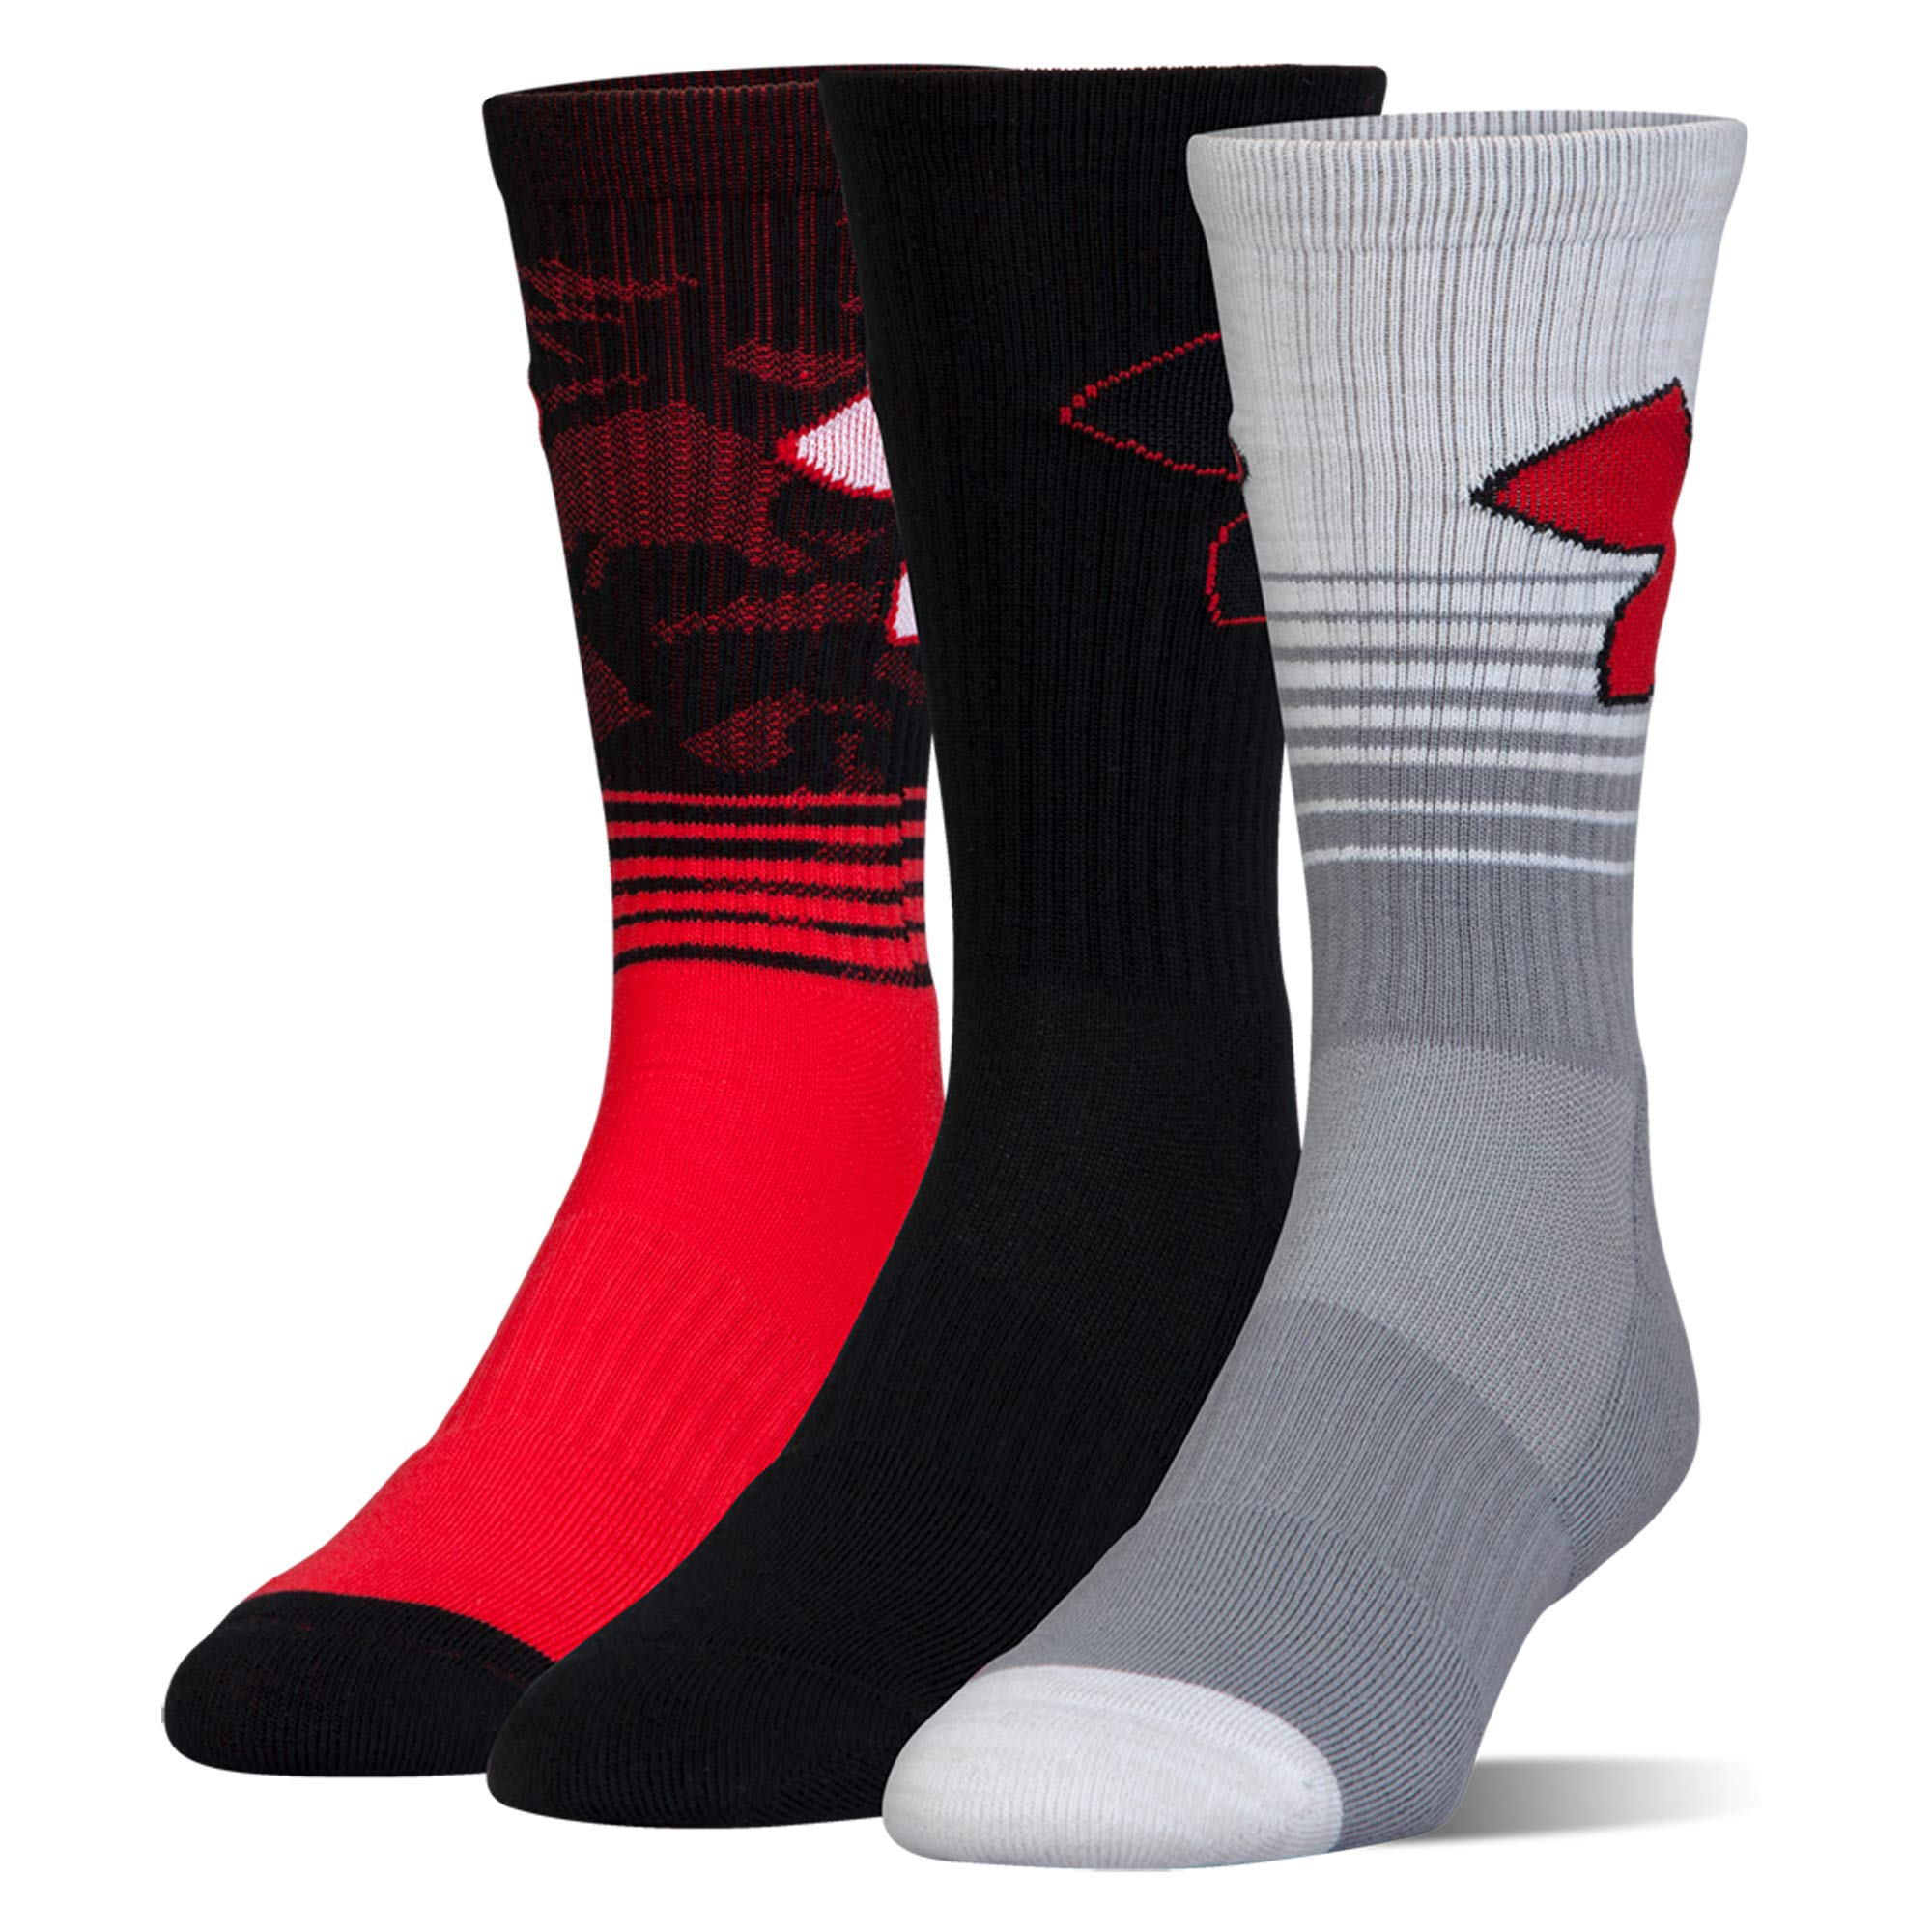 Boy's Under Armour Boys Phenom 2.0 Crew (3 Pack), Red, Youth Large by Under Armour